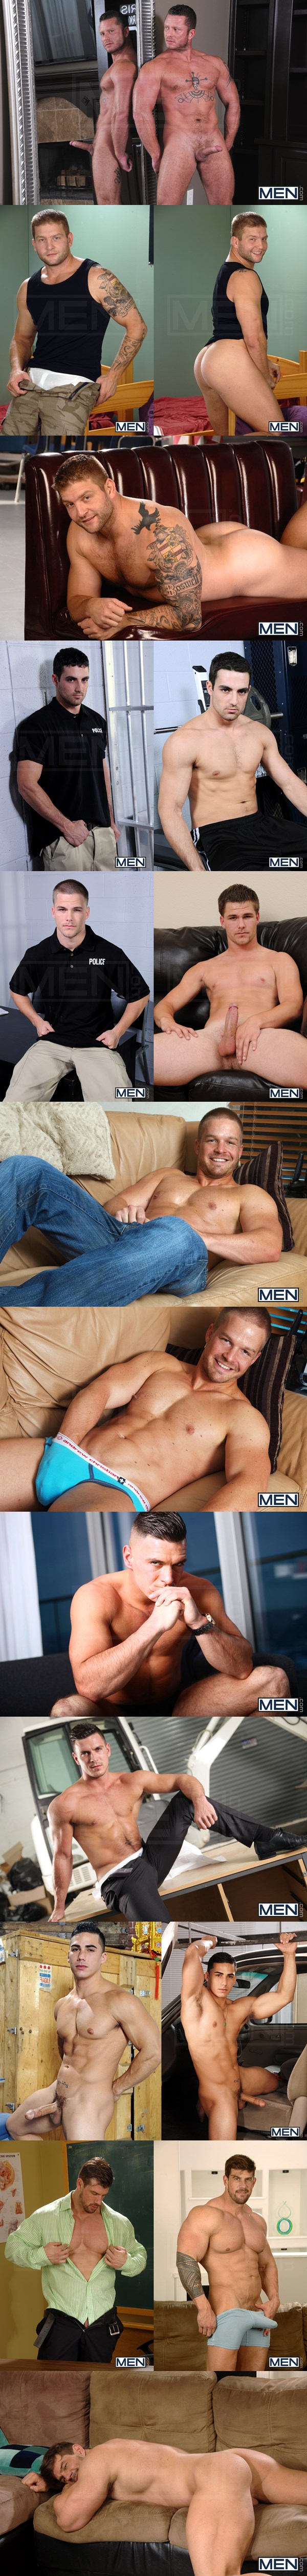 Charlie Harding, Colby Jansen, Jack King, Jimmy Johnson, Liam Magnuson, Paddy O'Brian, Topher DiMaggio, Zeb Atlas in Top to Bottom Part 2 at Men 01